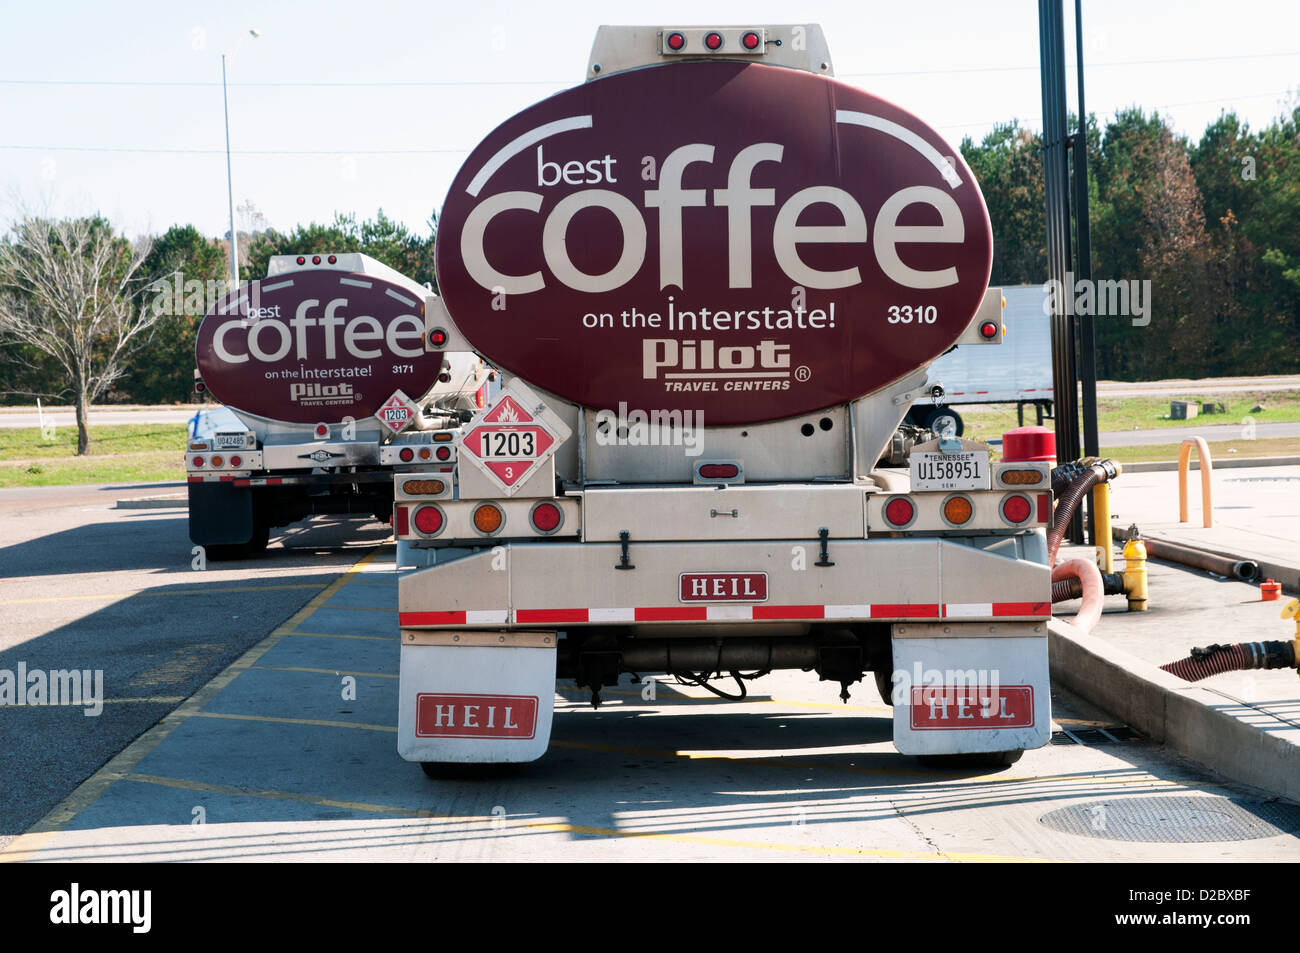 Coffee Tanker Truck on the Travel Center , Mississippi, USA, North America - Stock Image